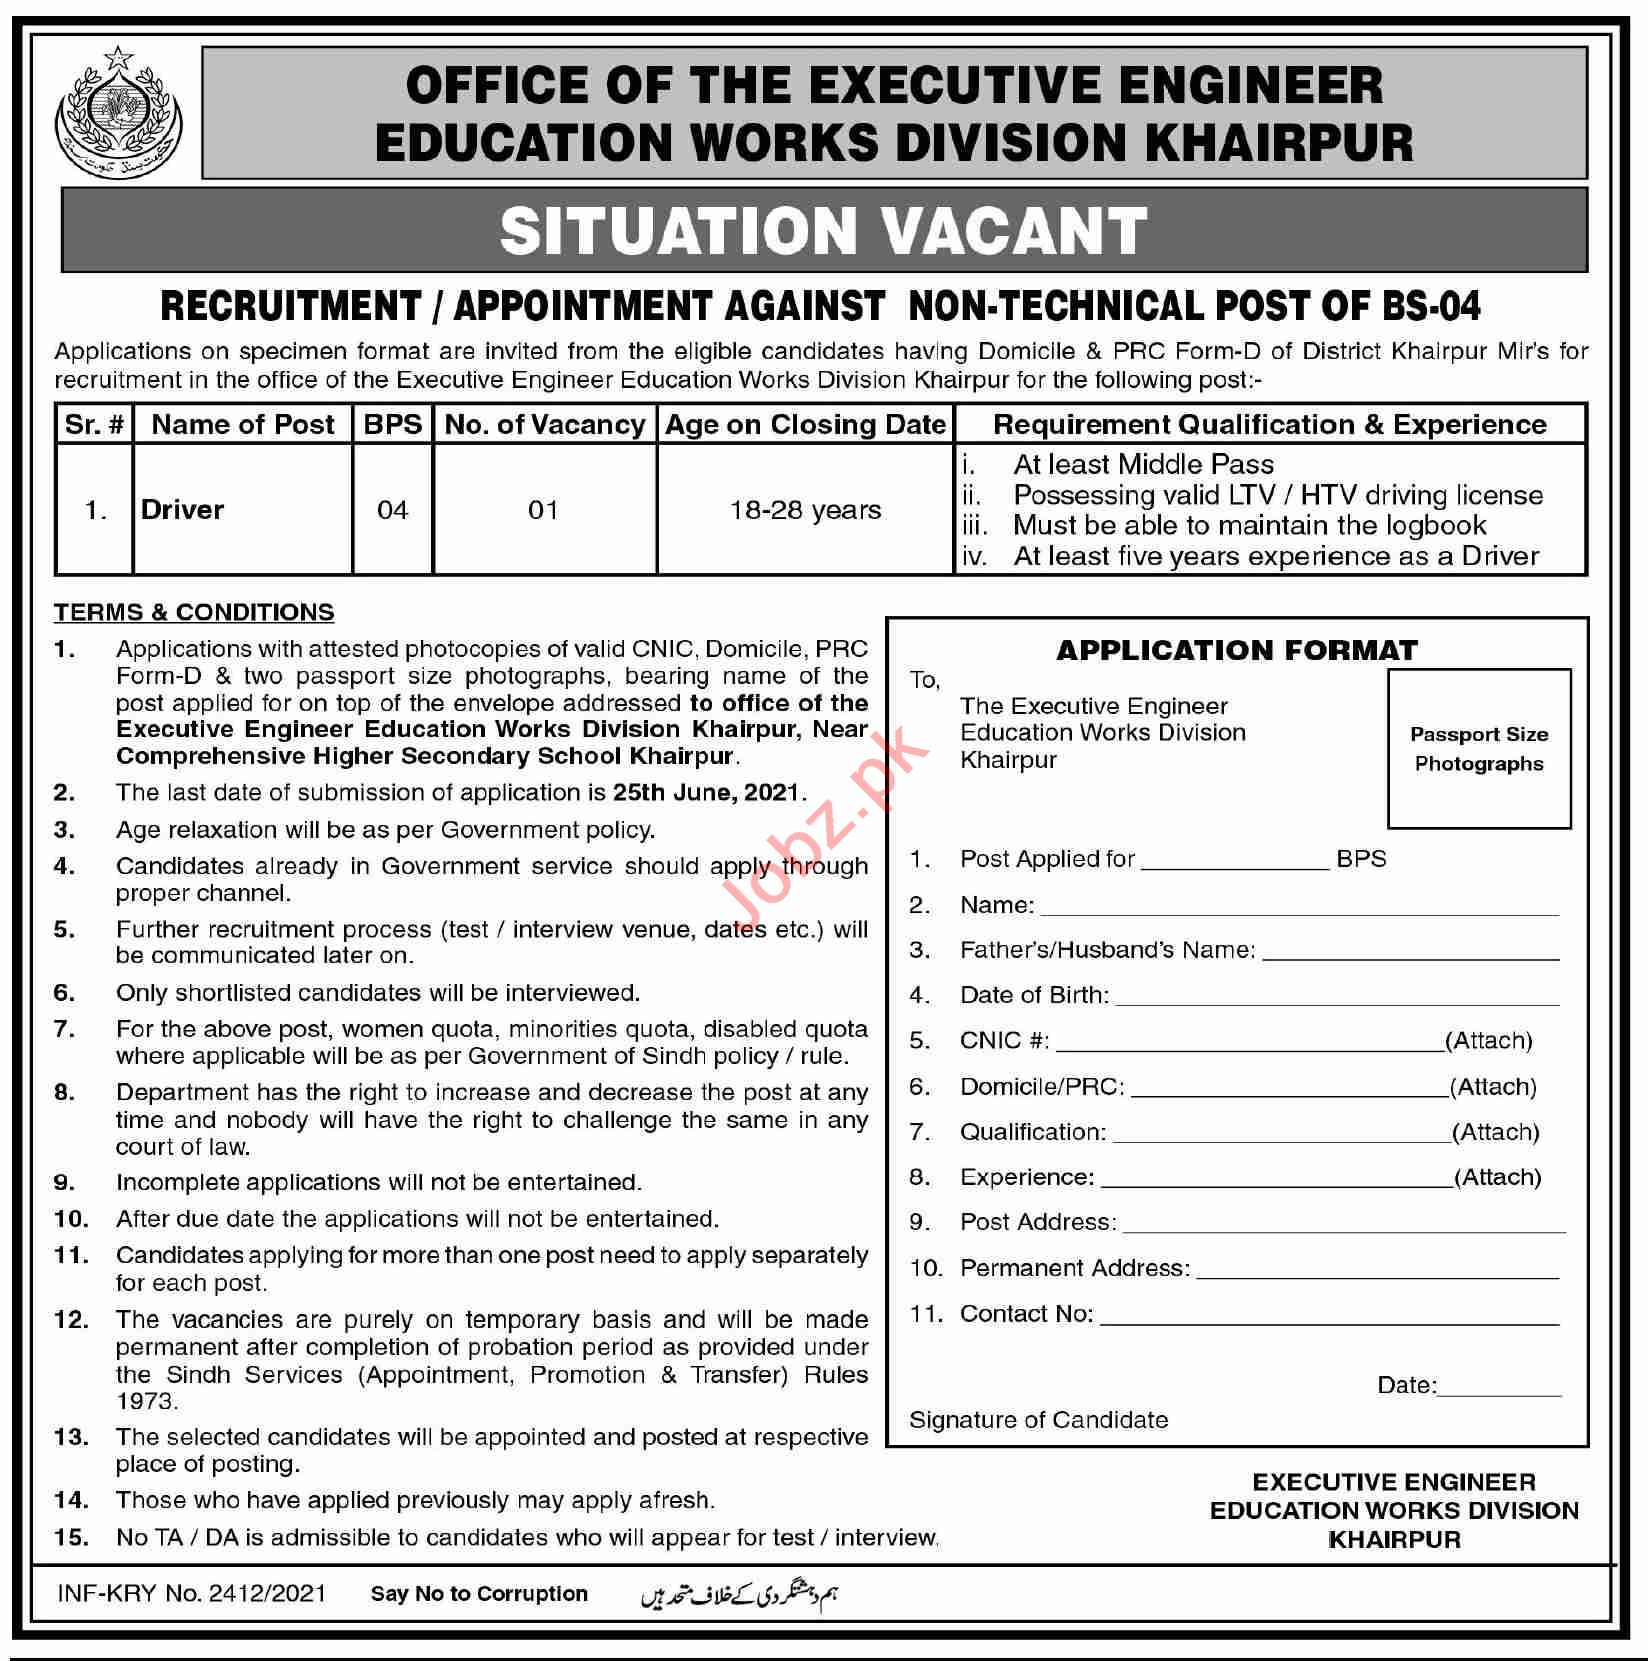 Education Works Division Khairpur Jobs 2021 for Drivers